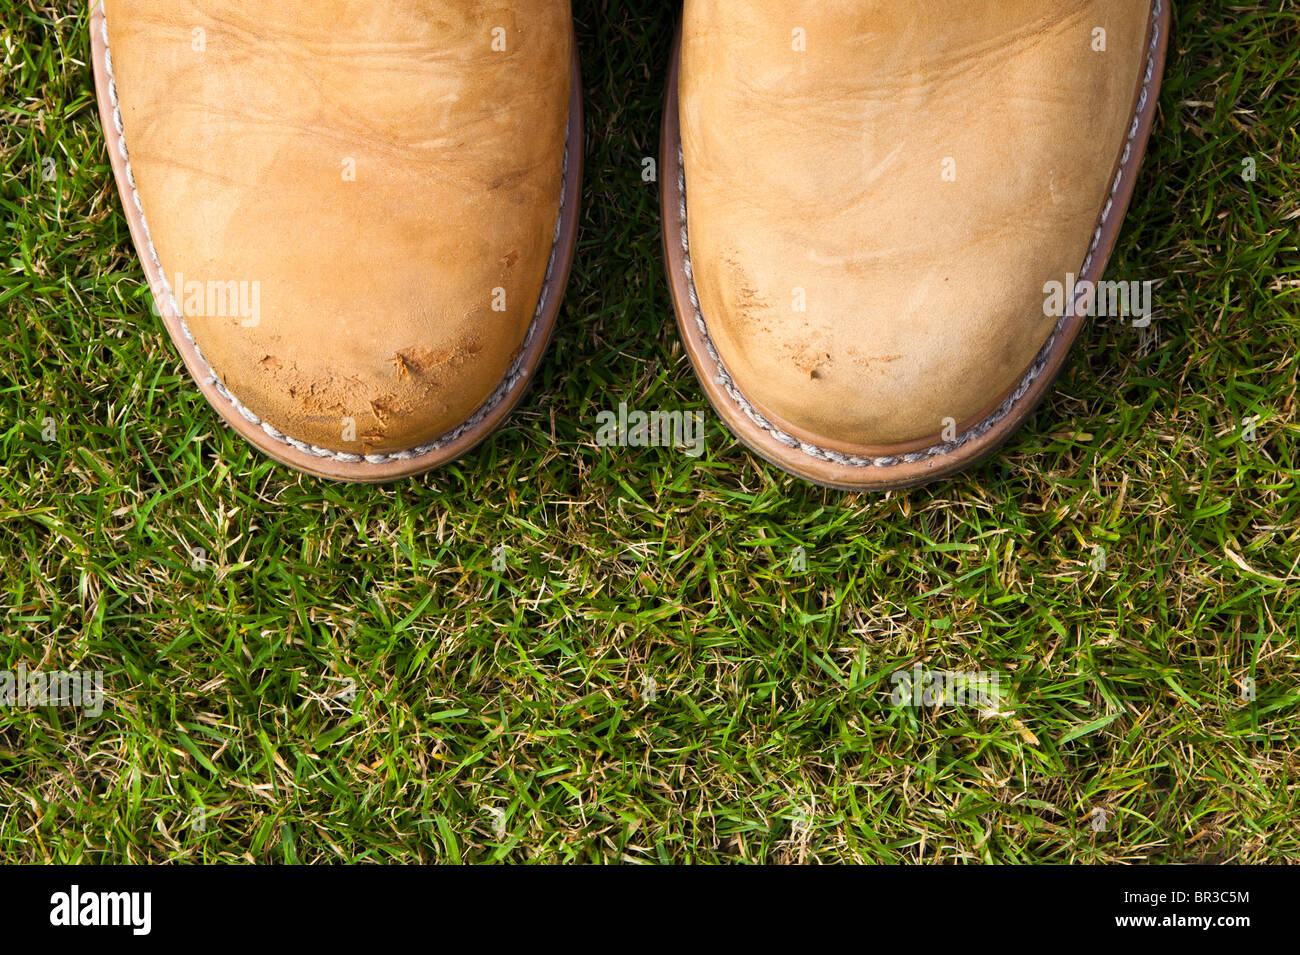 Pair of boots on grass - Stock Image